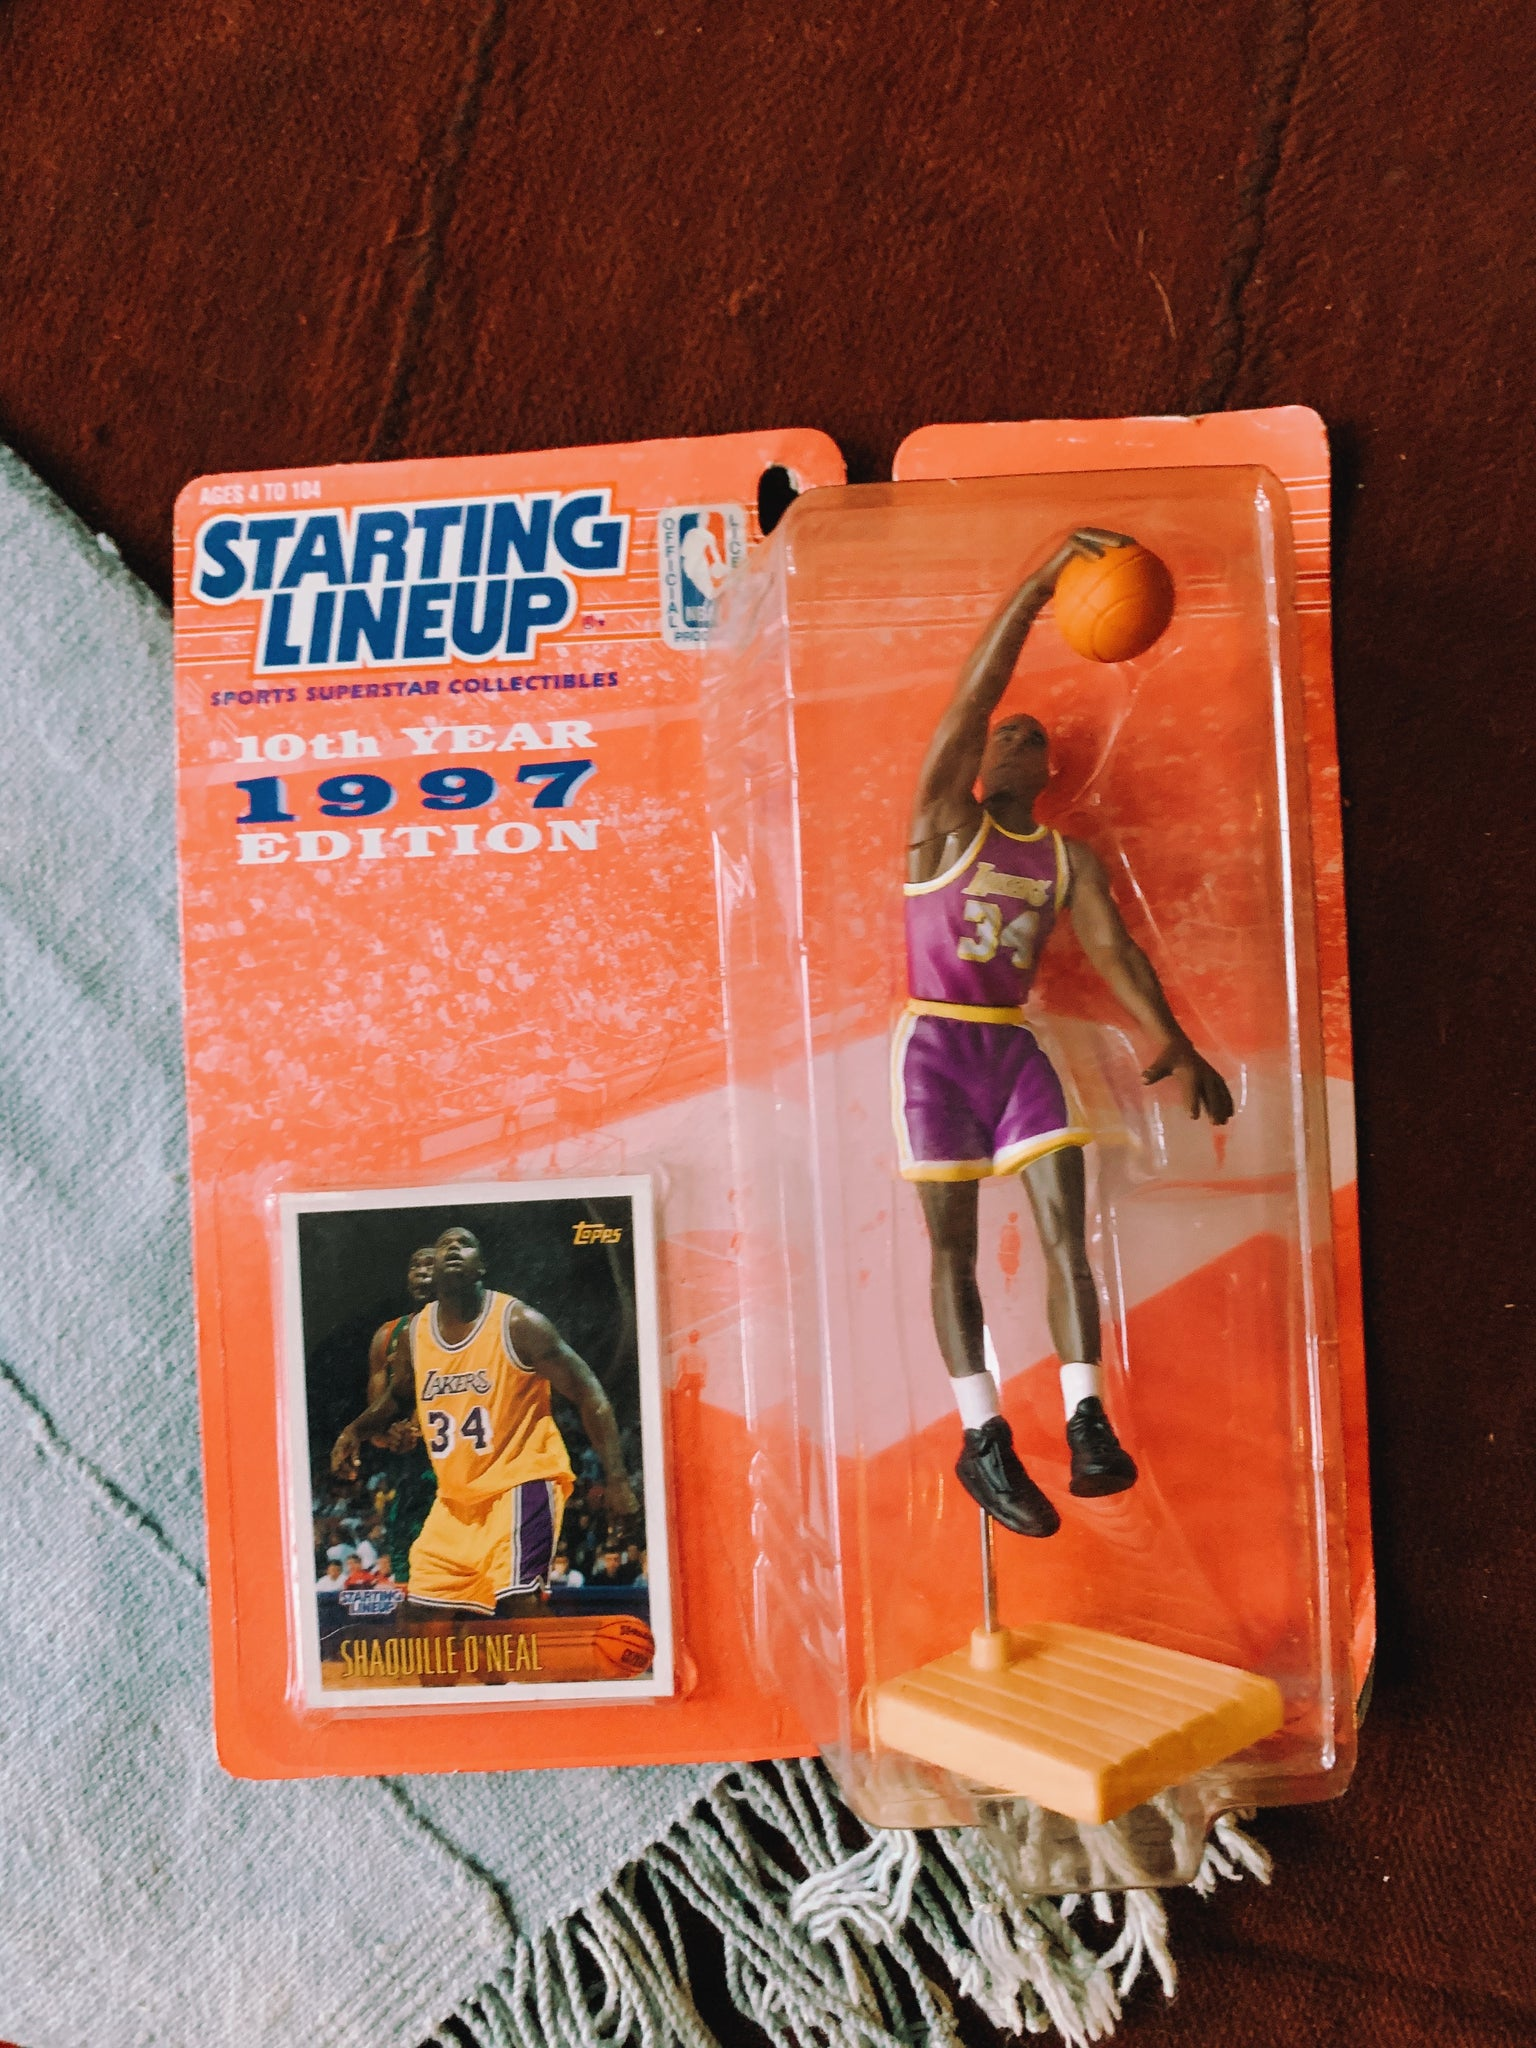 Vintage Starting Lineup Toys: Grant Hill, Shaq, Glen Rice  (1990's)